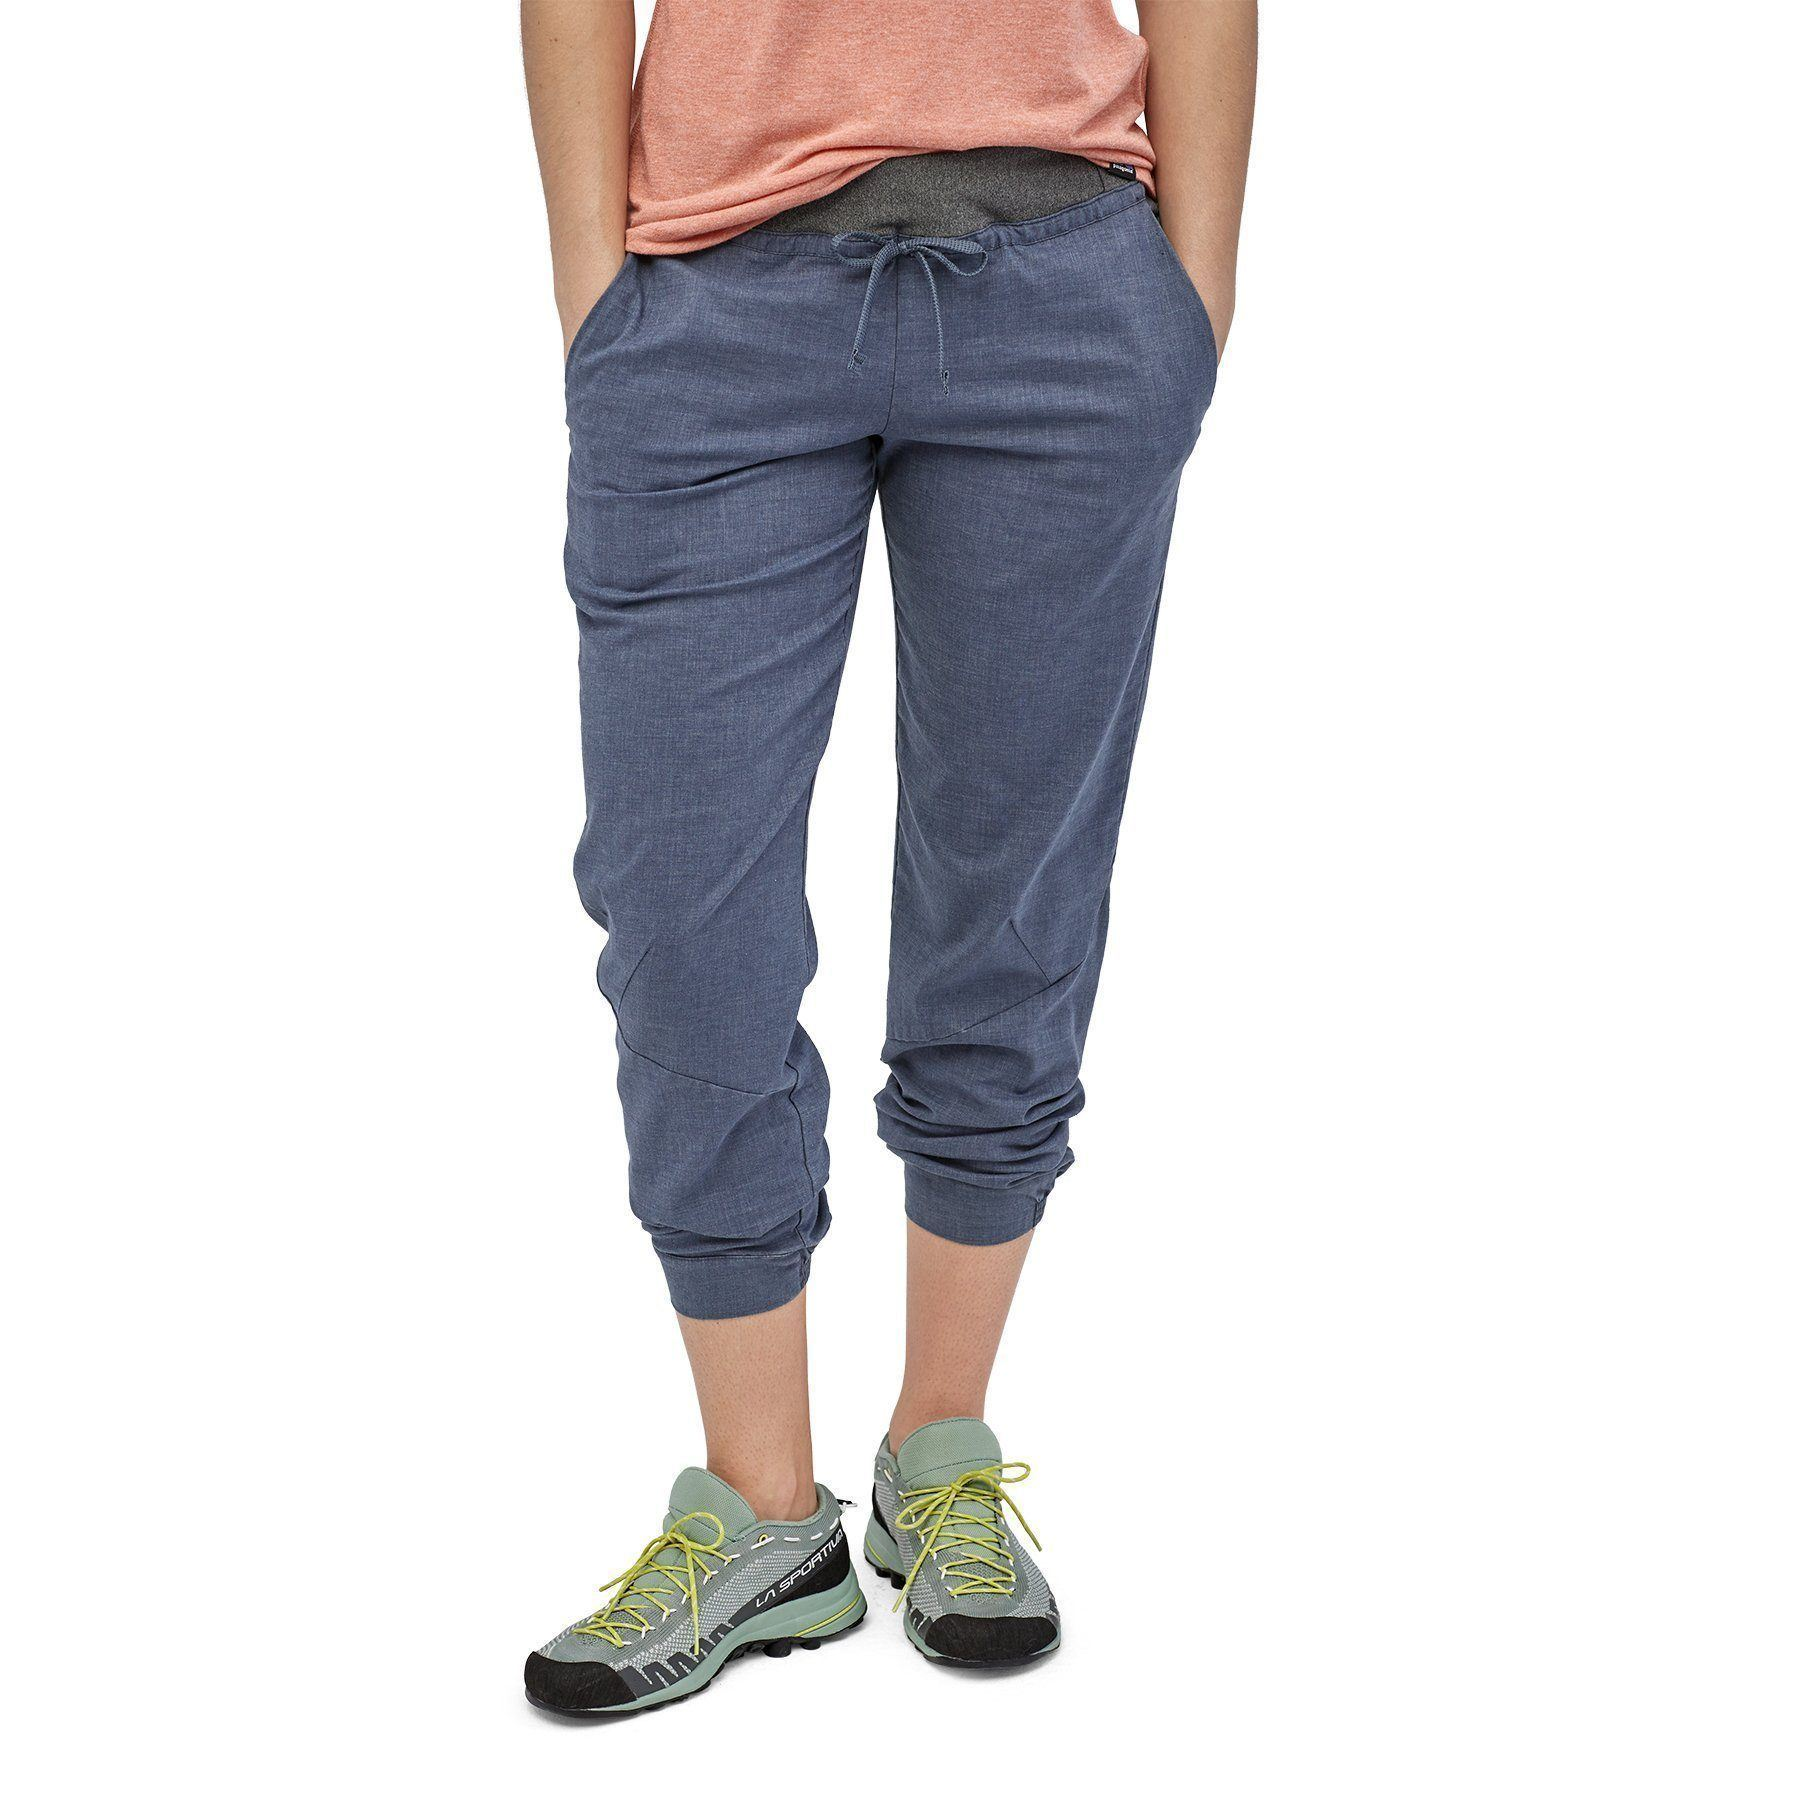 Patagonia - Women's Hampi Rock Pants - Hemp / Recycled Polyester - Weekendbee - sustainable sportswear